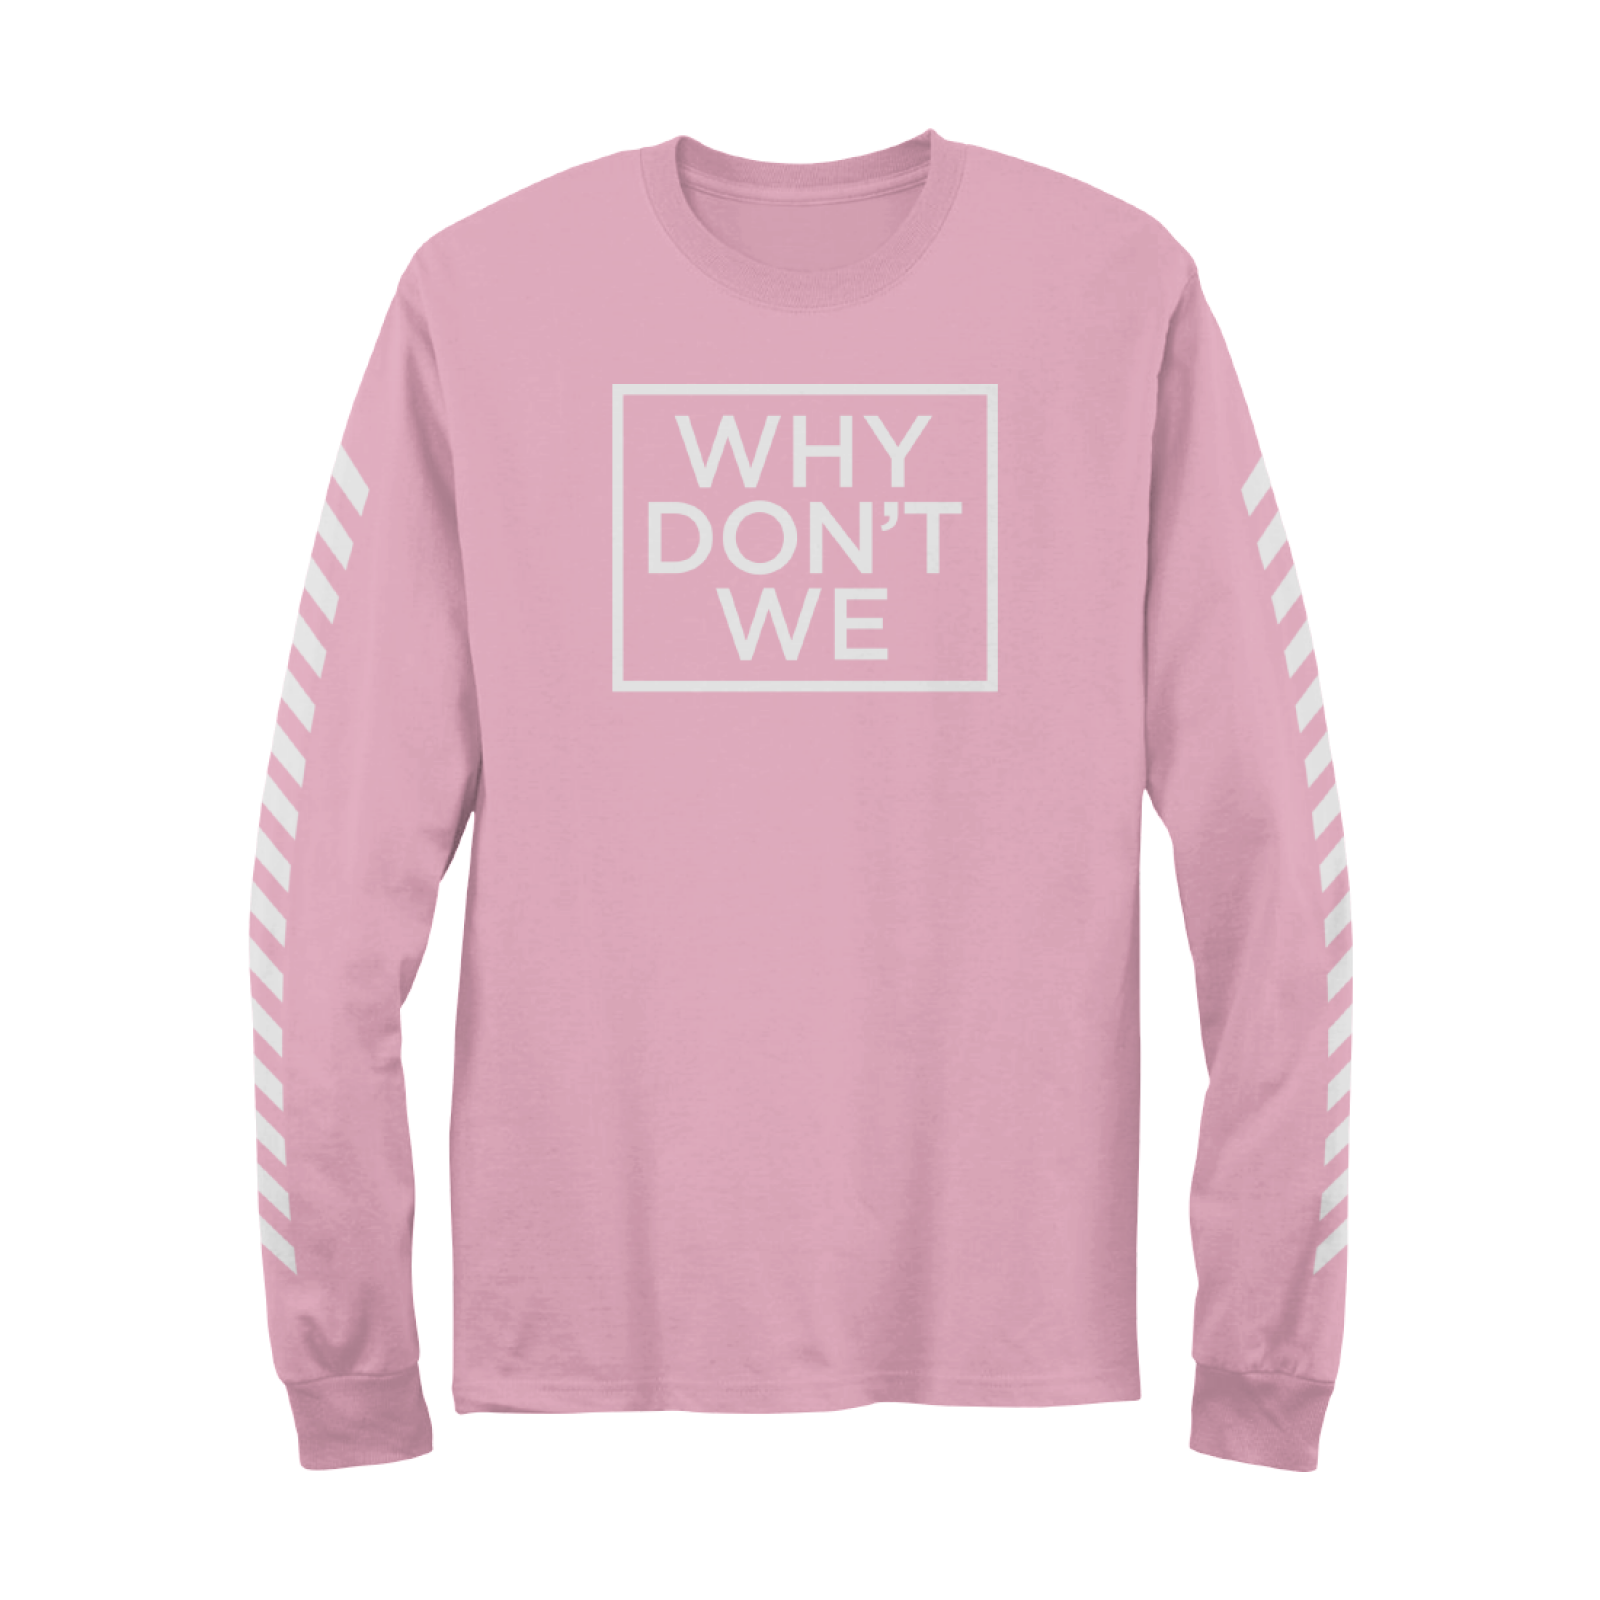 09a6dc86a6fcf7 Why Don t We Long Sleeve (Pink) - Apparel